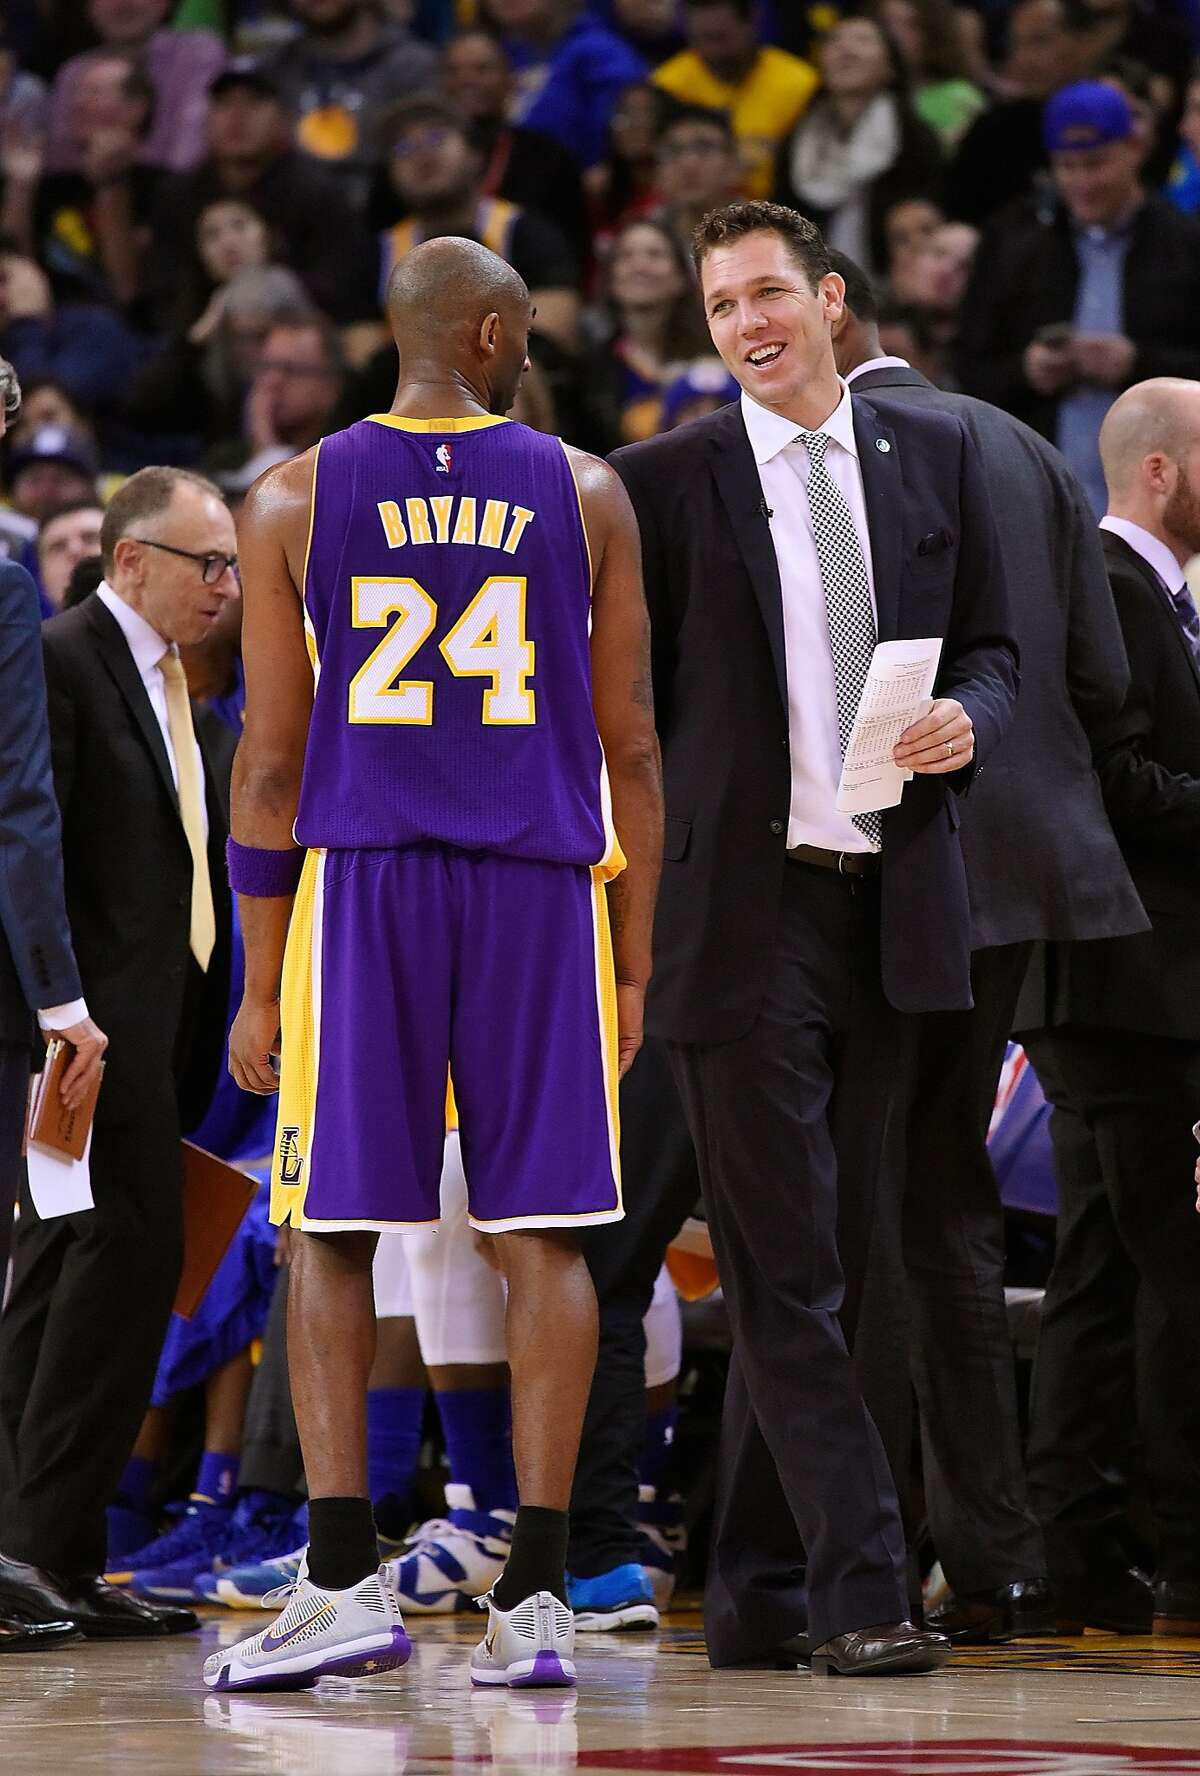 Kobe Bryant of the Los Angeles Lakers during a time out talks with interim head coach Luke Walton of the Golden State Warriors at ORACLE Arena on November 24, 2015 in Oakland, California.